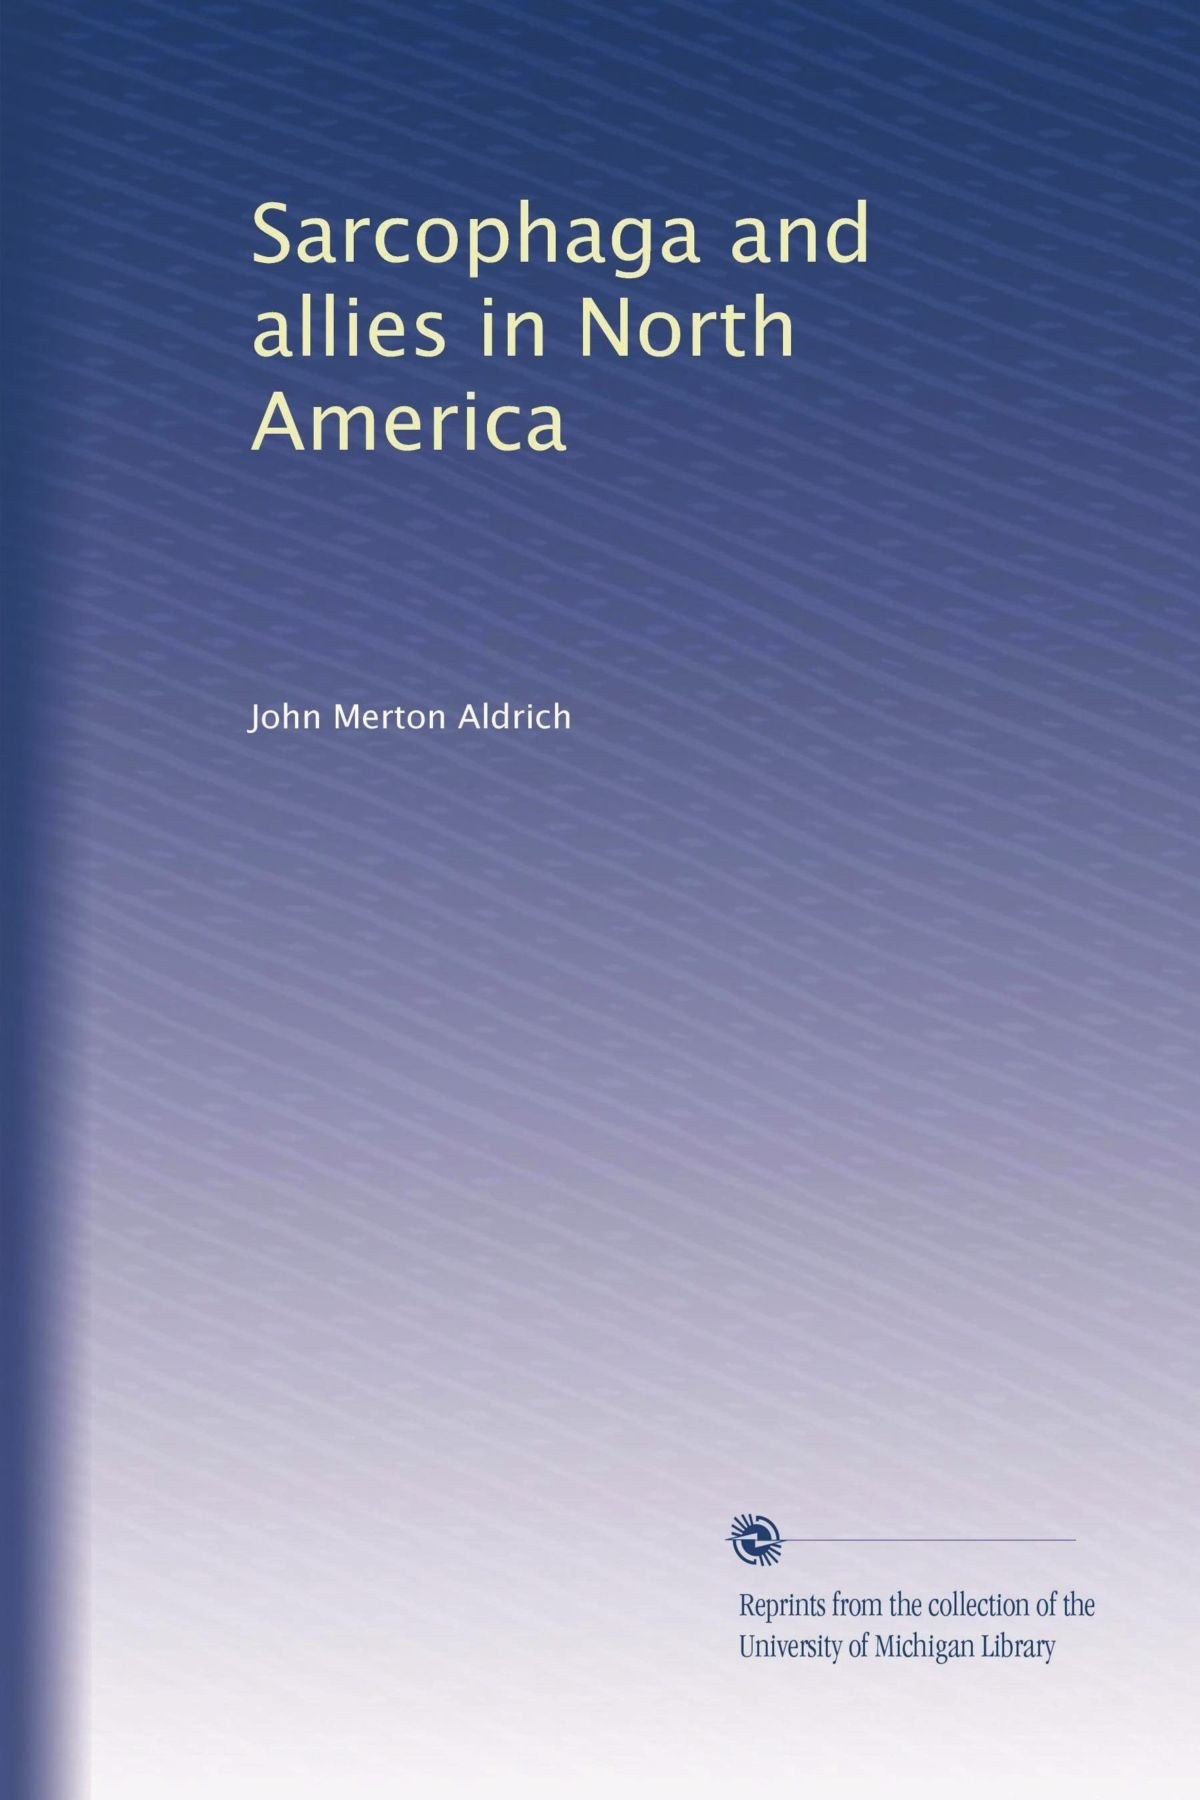 Sarcophaga and allies in North America pdf